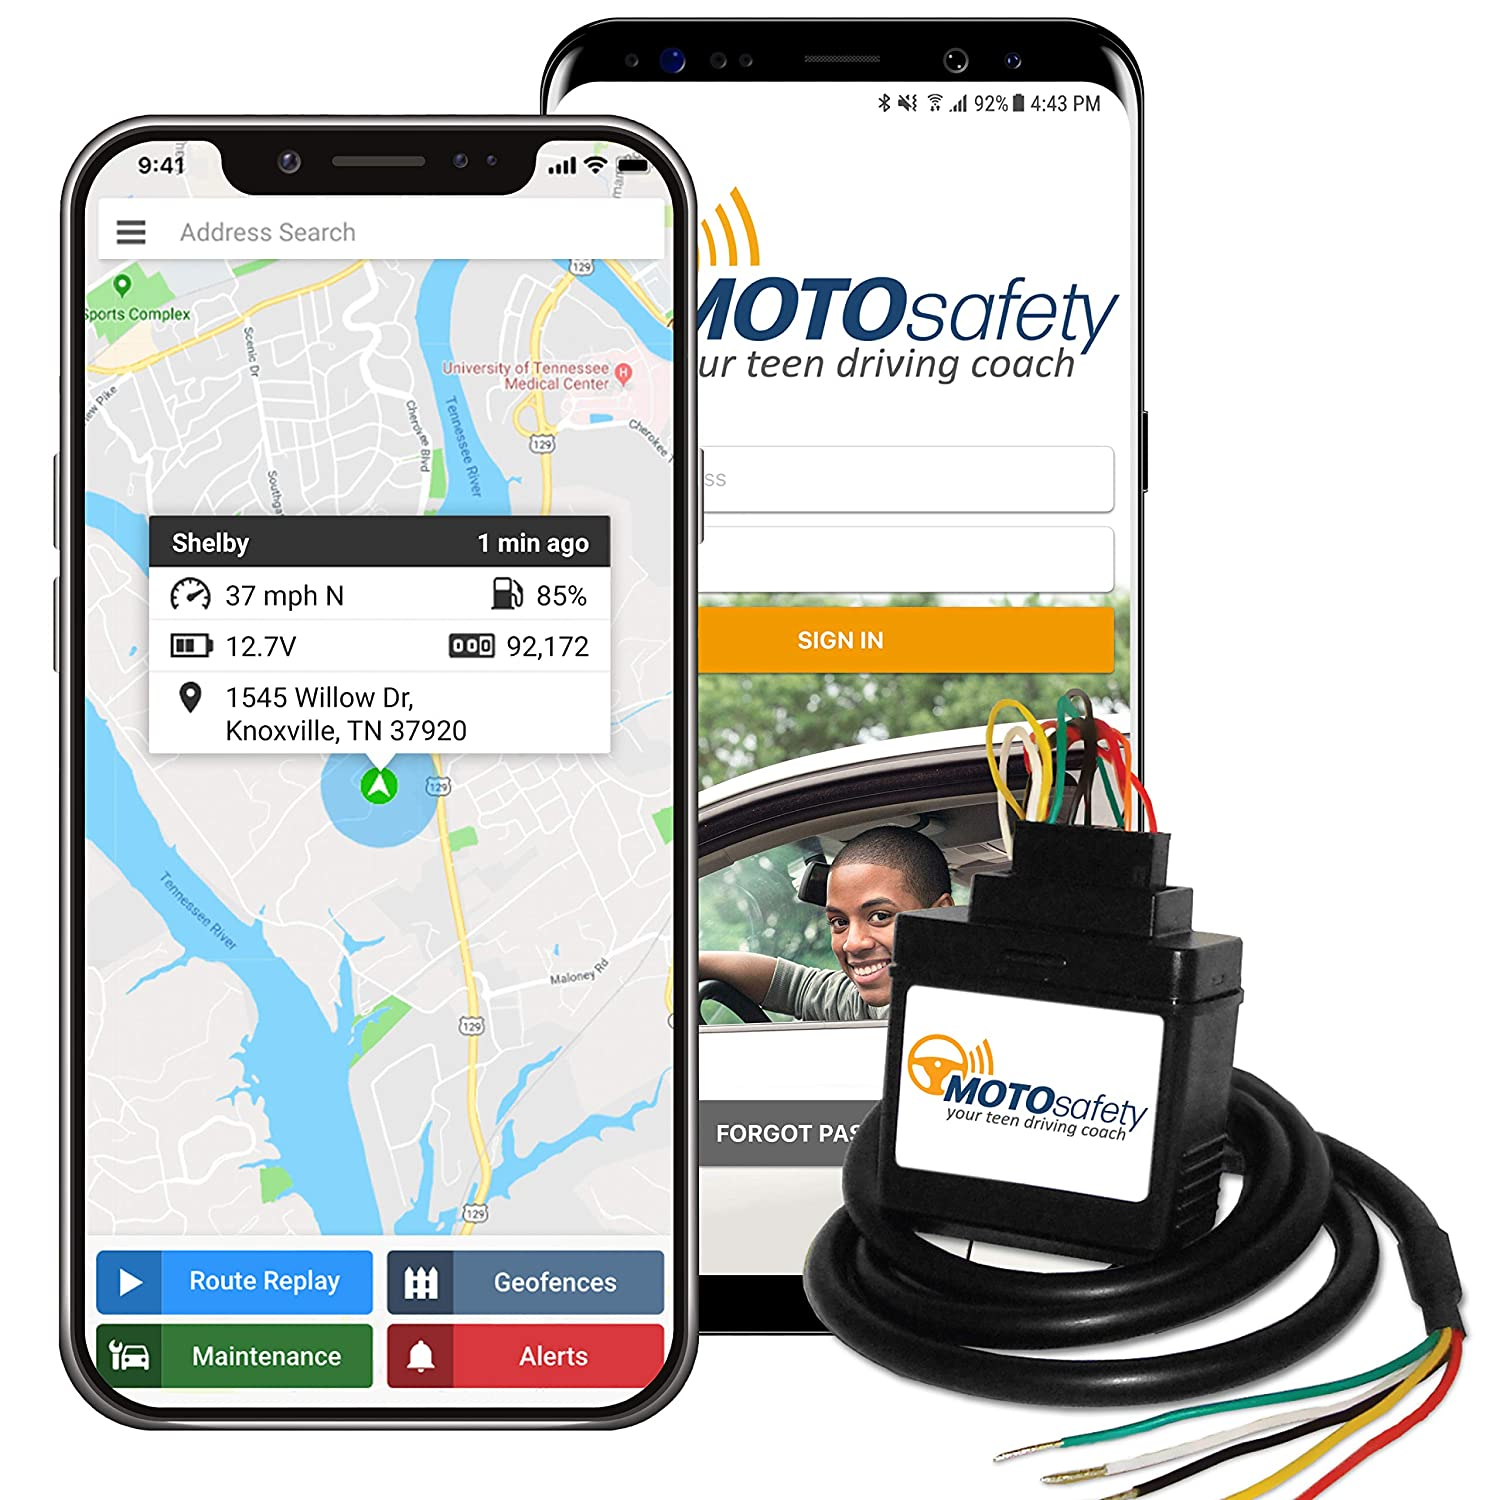 Vehicle Tracker and Tracking Device Agilis Systems MotoSafety Mwaas1P1 Wired 3G GPS Car Tracker with One Month of Service